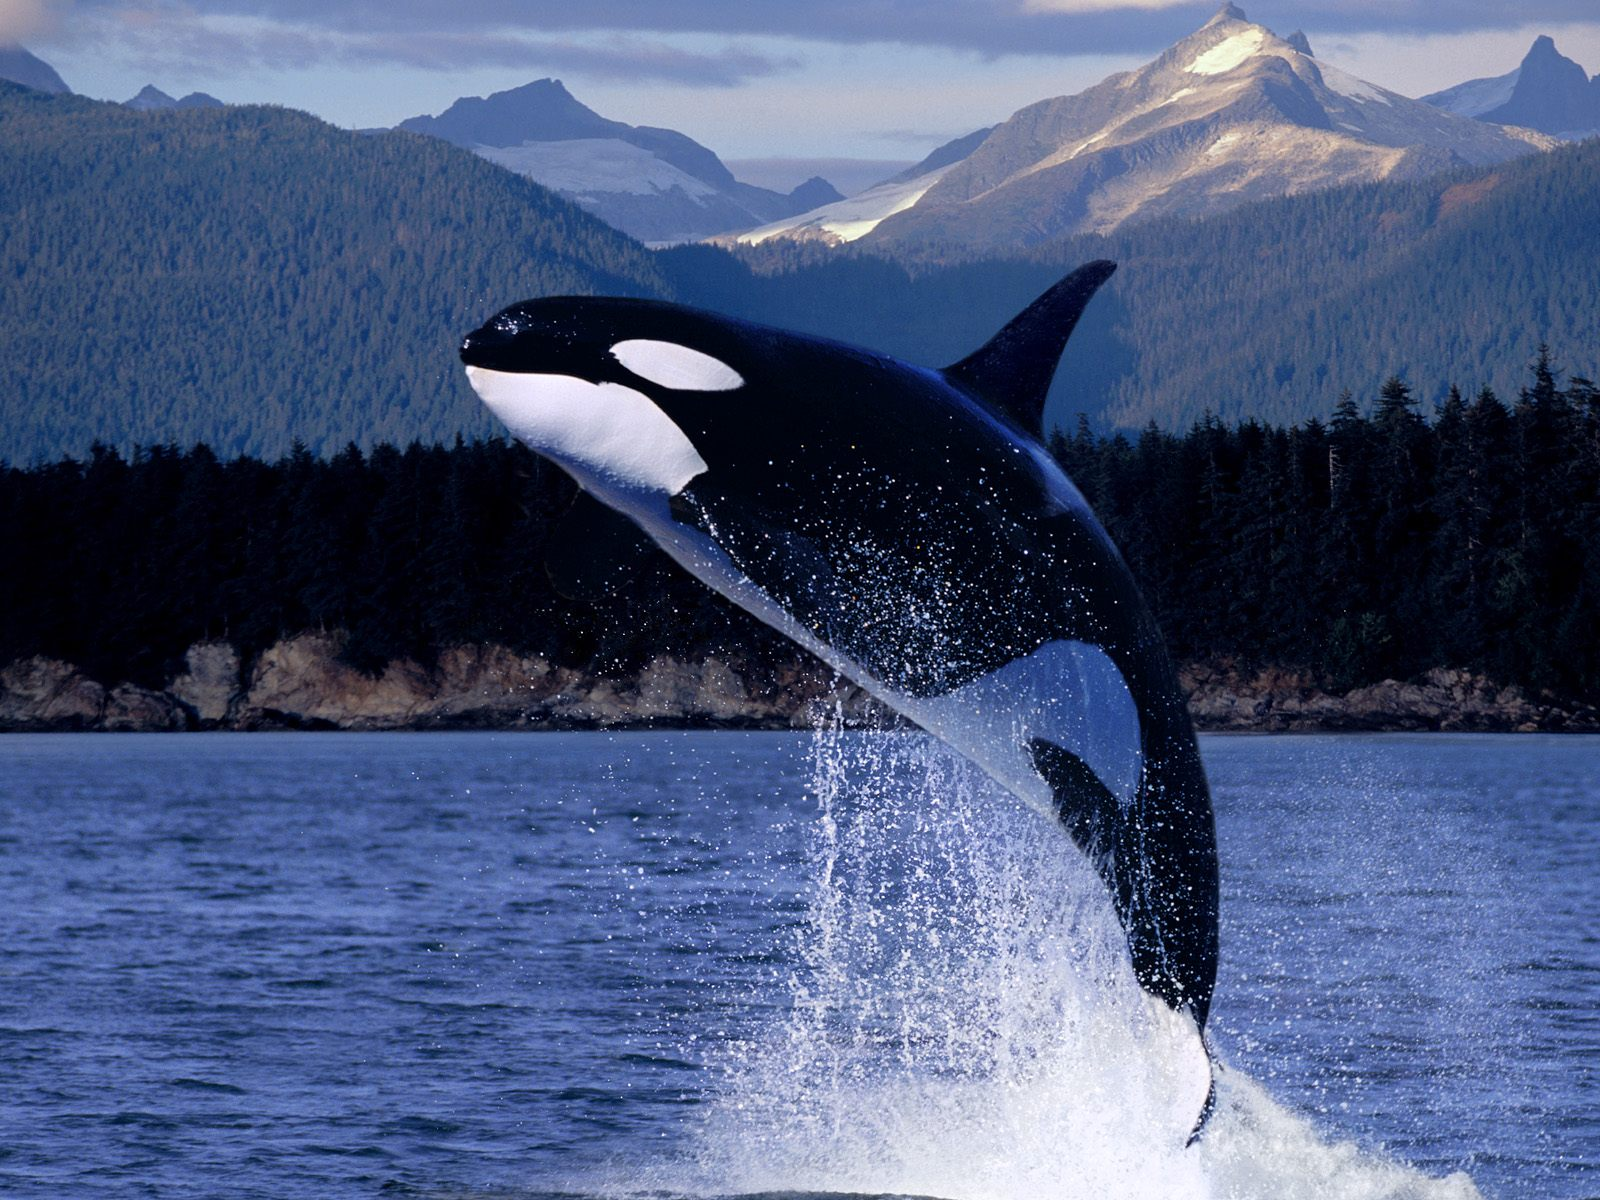 ocean animals animal biggest sea water whales background wallpapers desktop whale creatures killer orca largest creature oceans wildlife marine oceanic